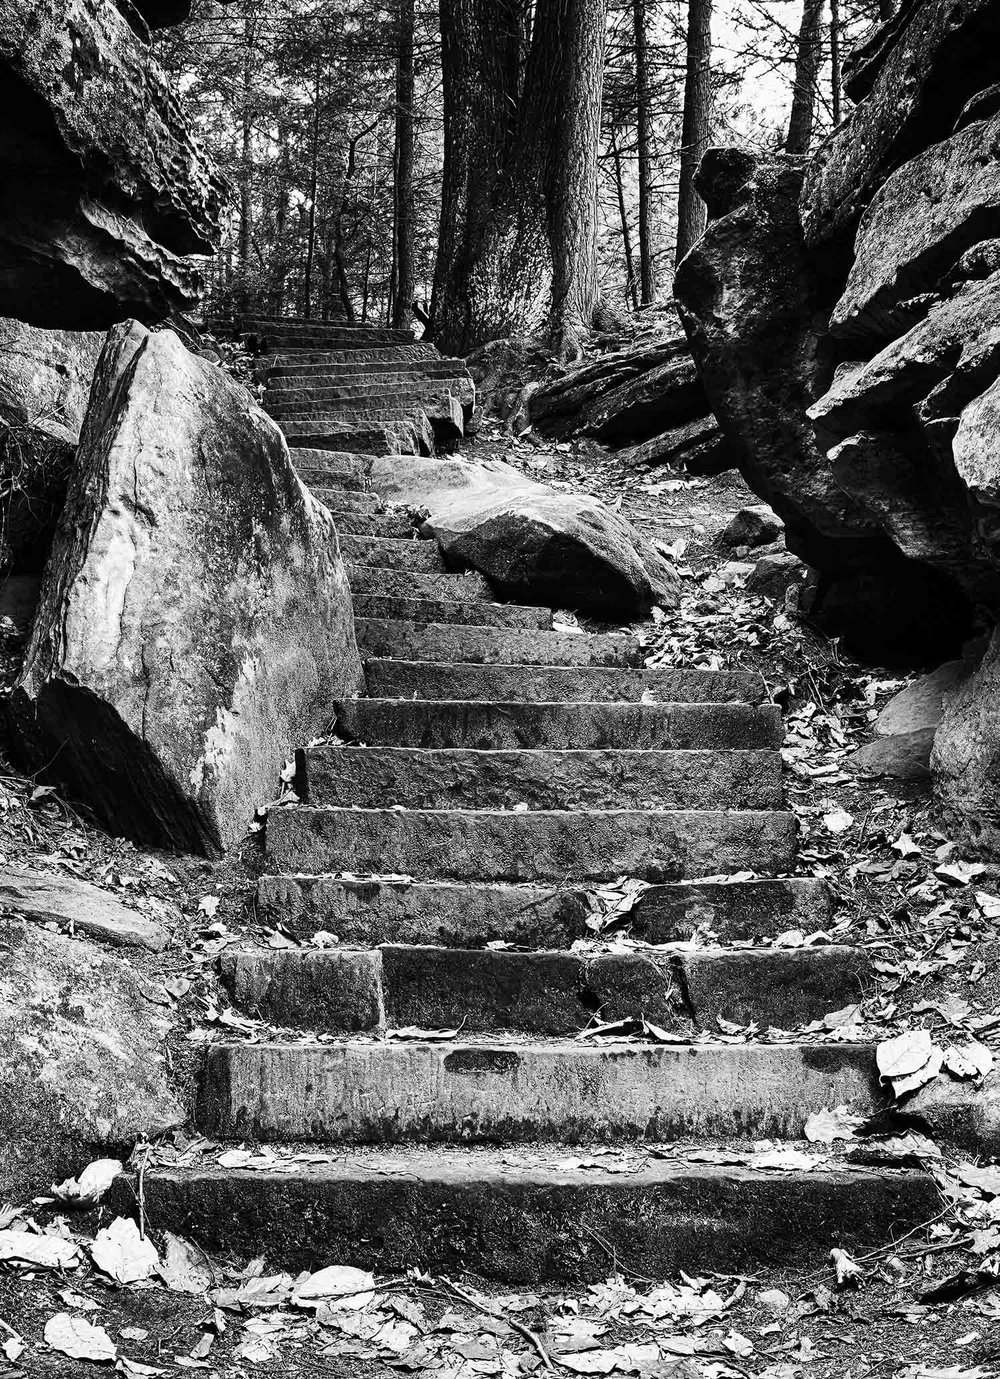 Trail Stairs - Virginia Kendall Ledges, Cuyahoga Valley National Park